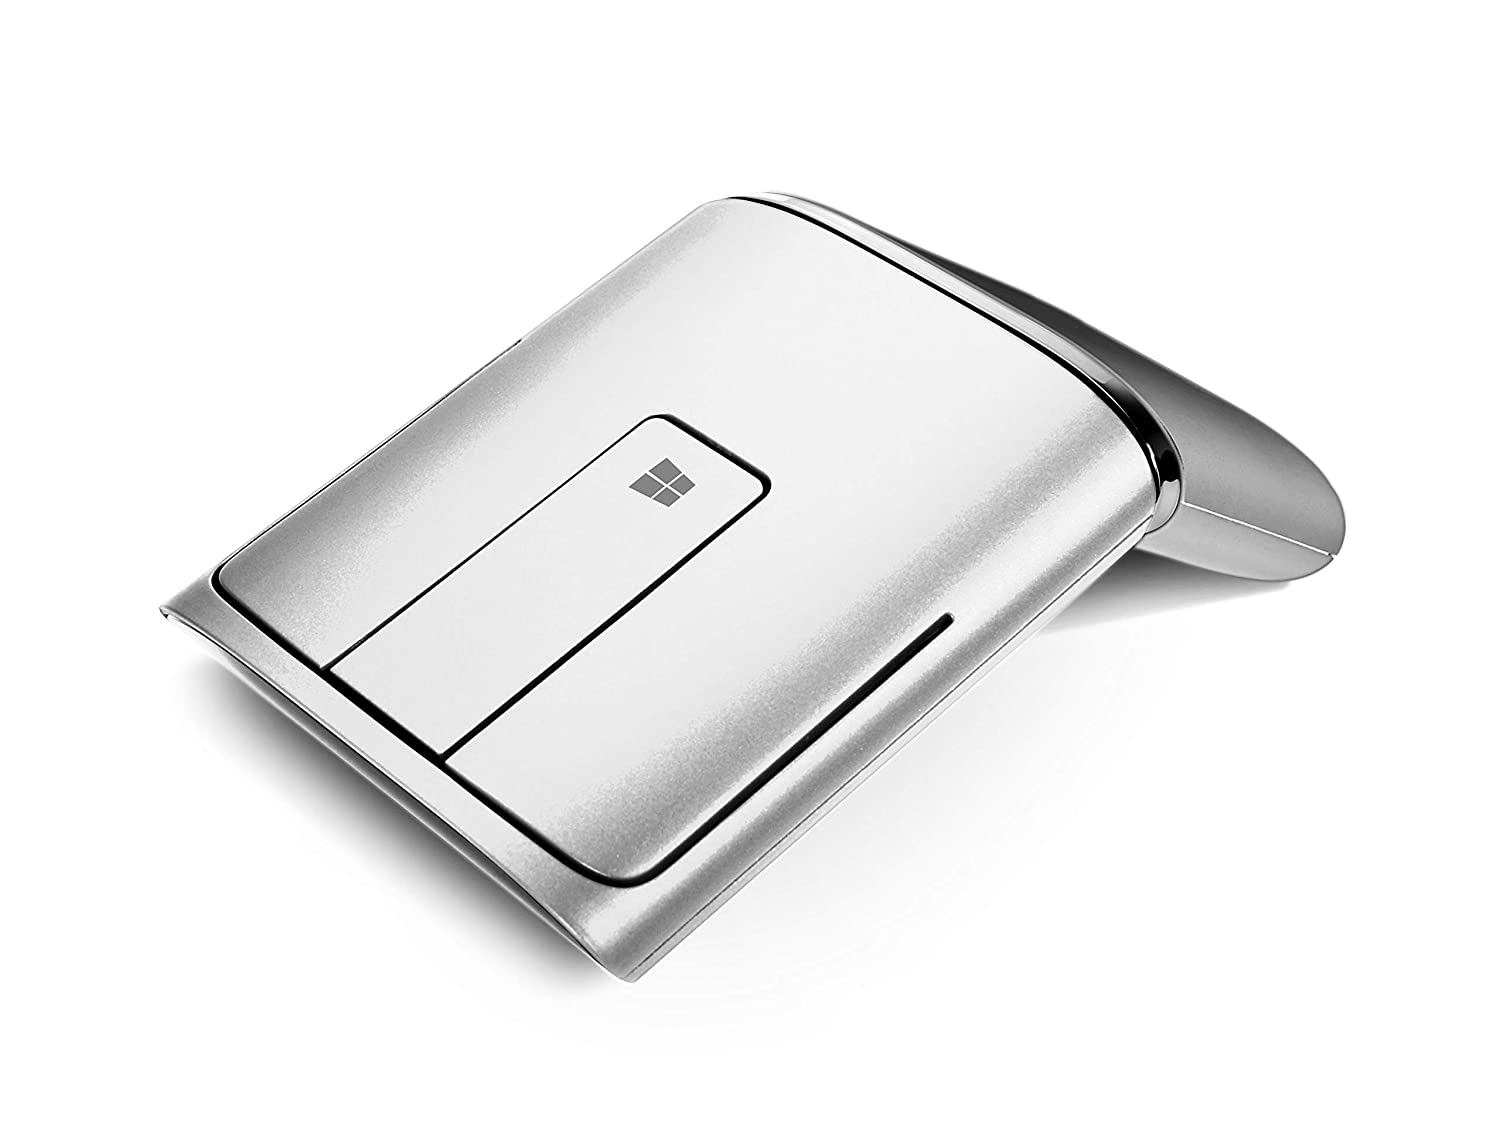 Buy Lenovo 888016249 N700 Dual Mode Wl Touch Mouse Audi Diamond Chrome  Last Stock Silver Online At Low Prices In India Reviews Ratings